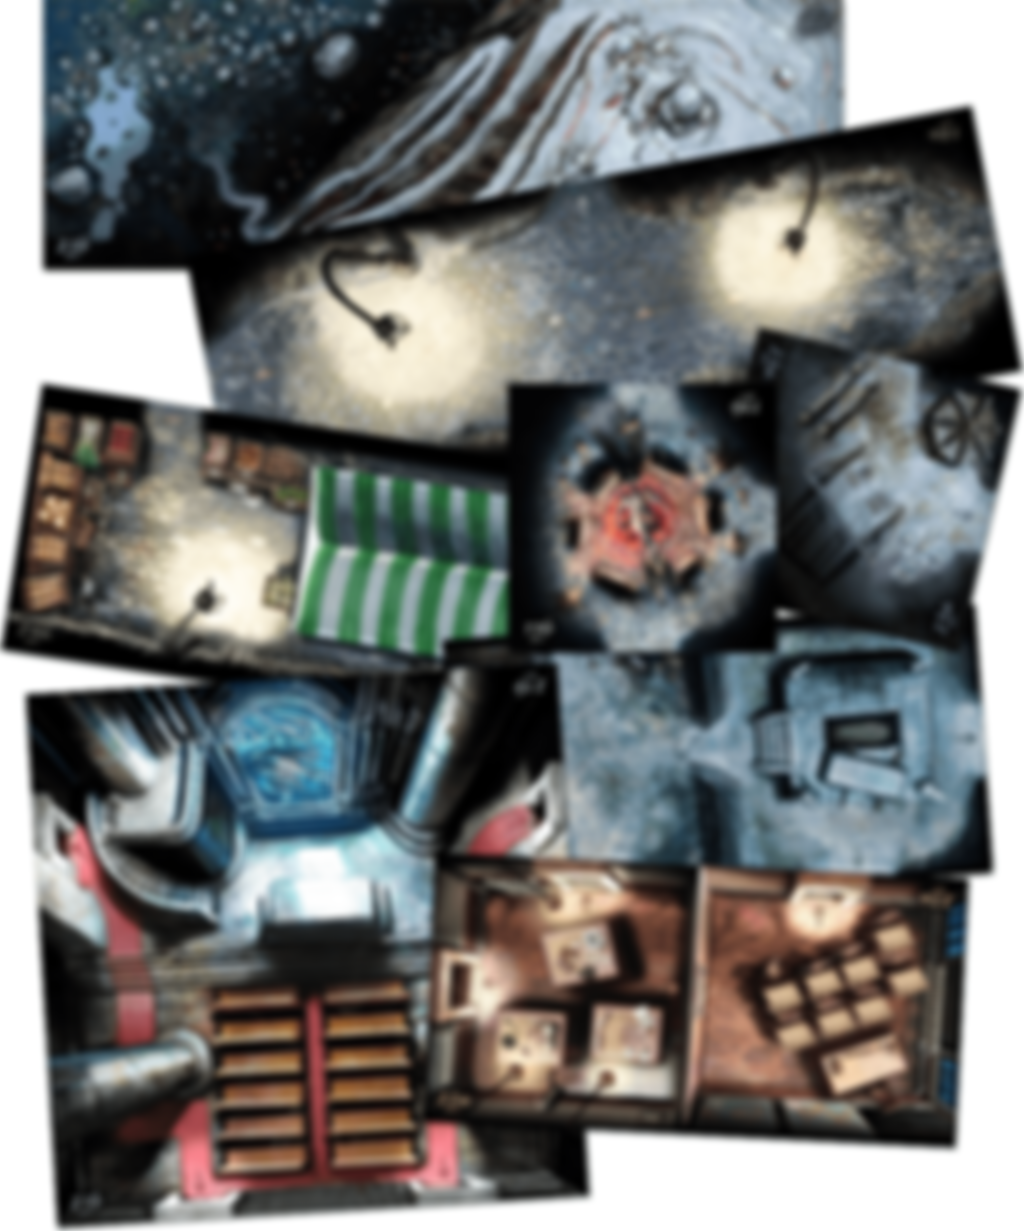 Cthulhu: Death May Die - Season 2 Expansion tiles